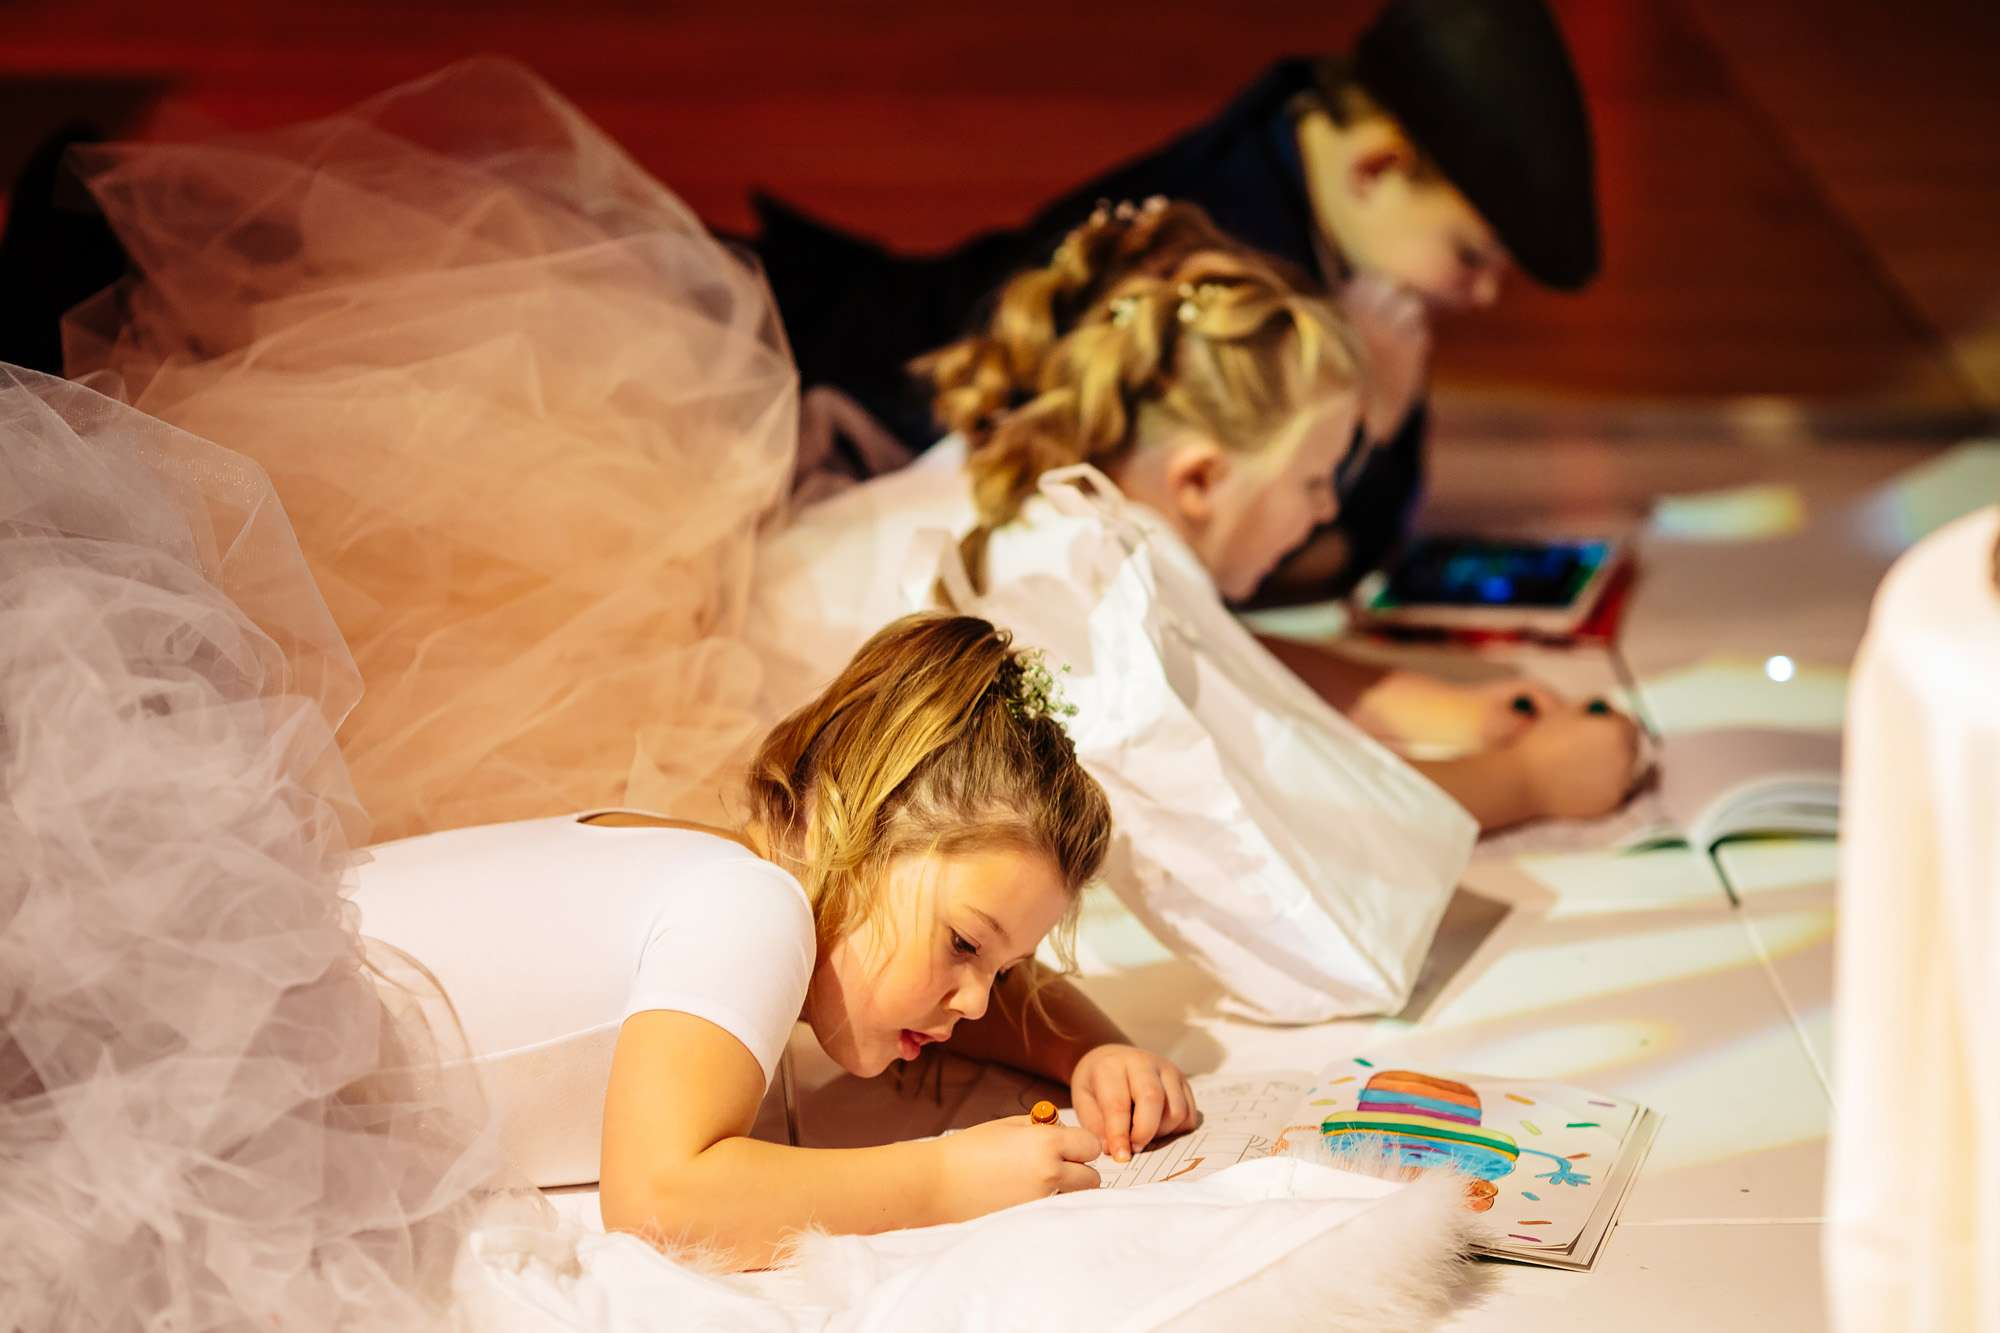 Young kids drawing on the floor at a wedding